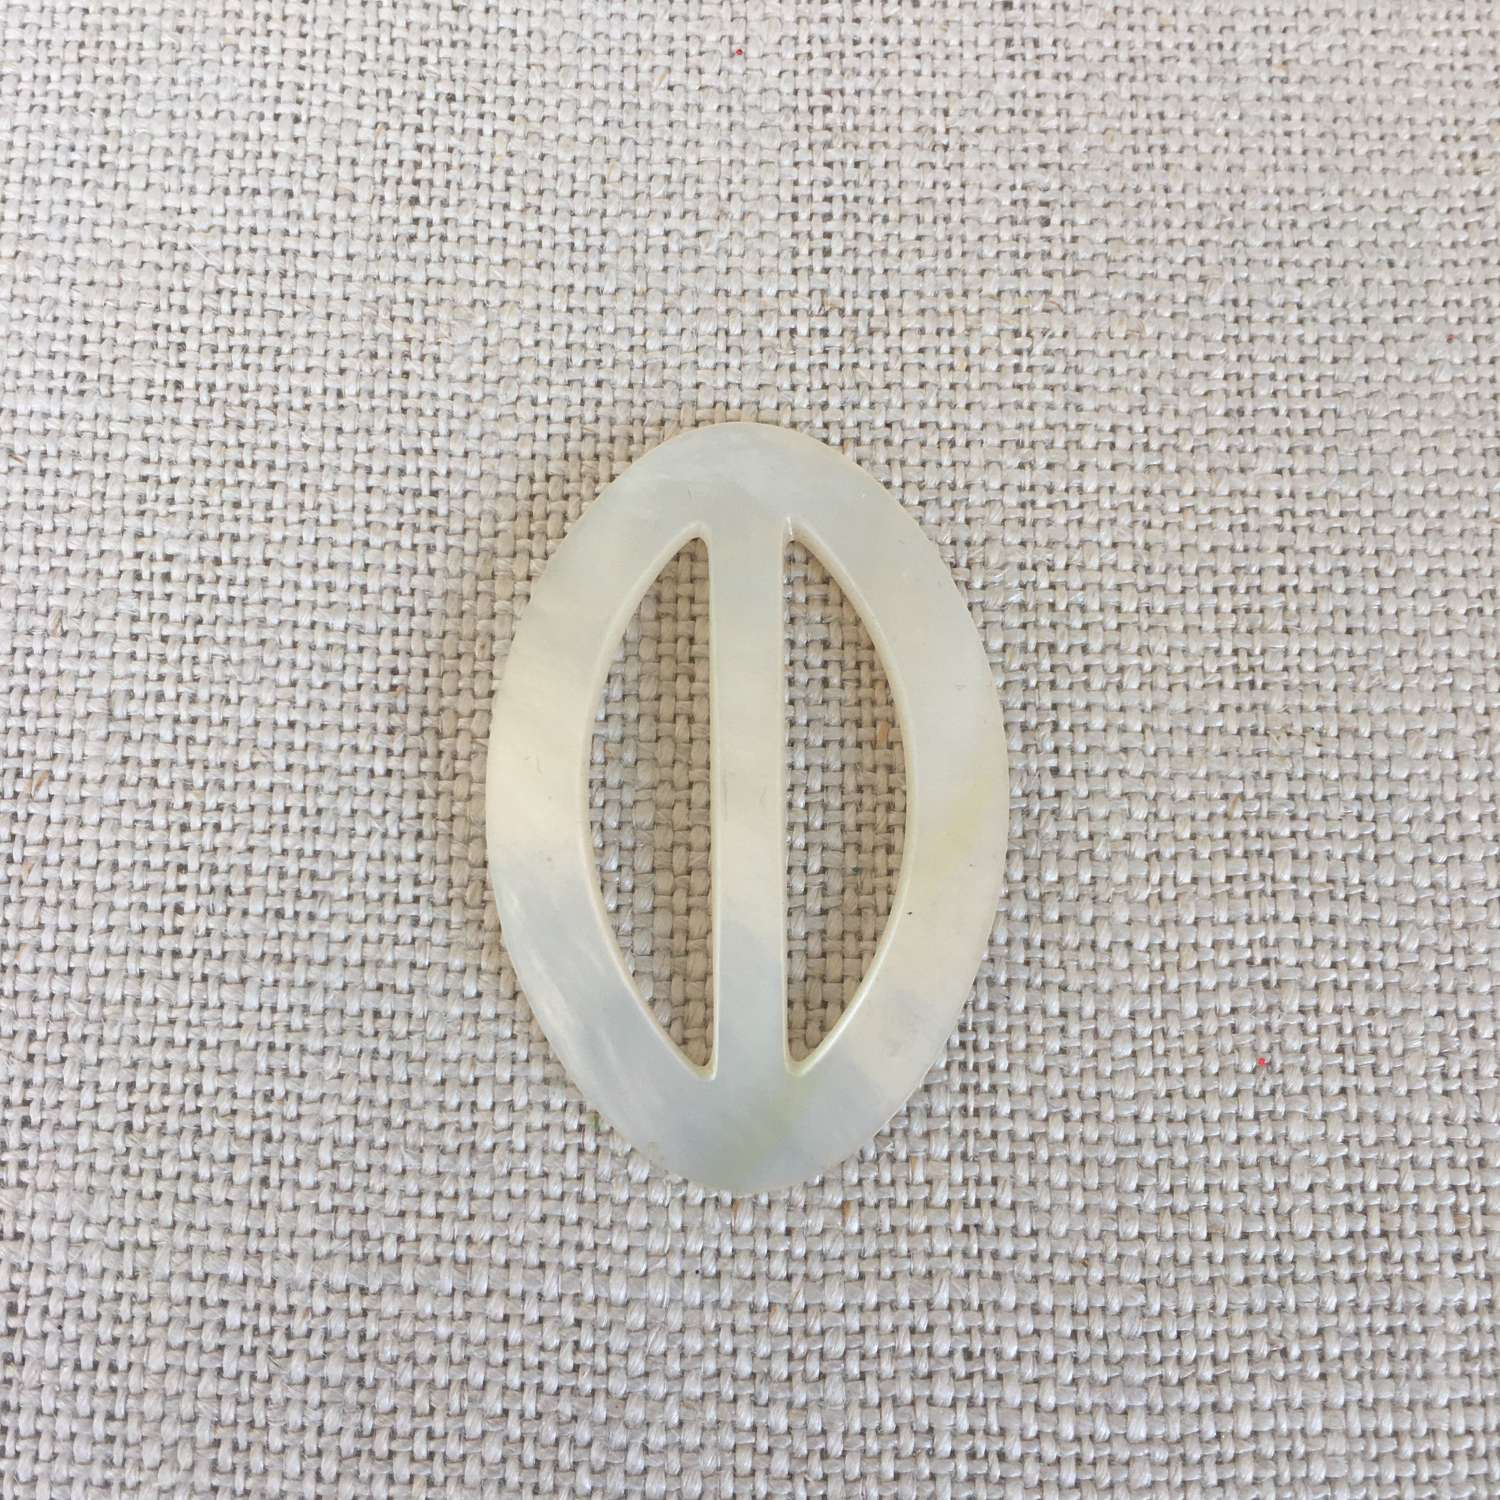 Vintage oval mother of pearl buckle